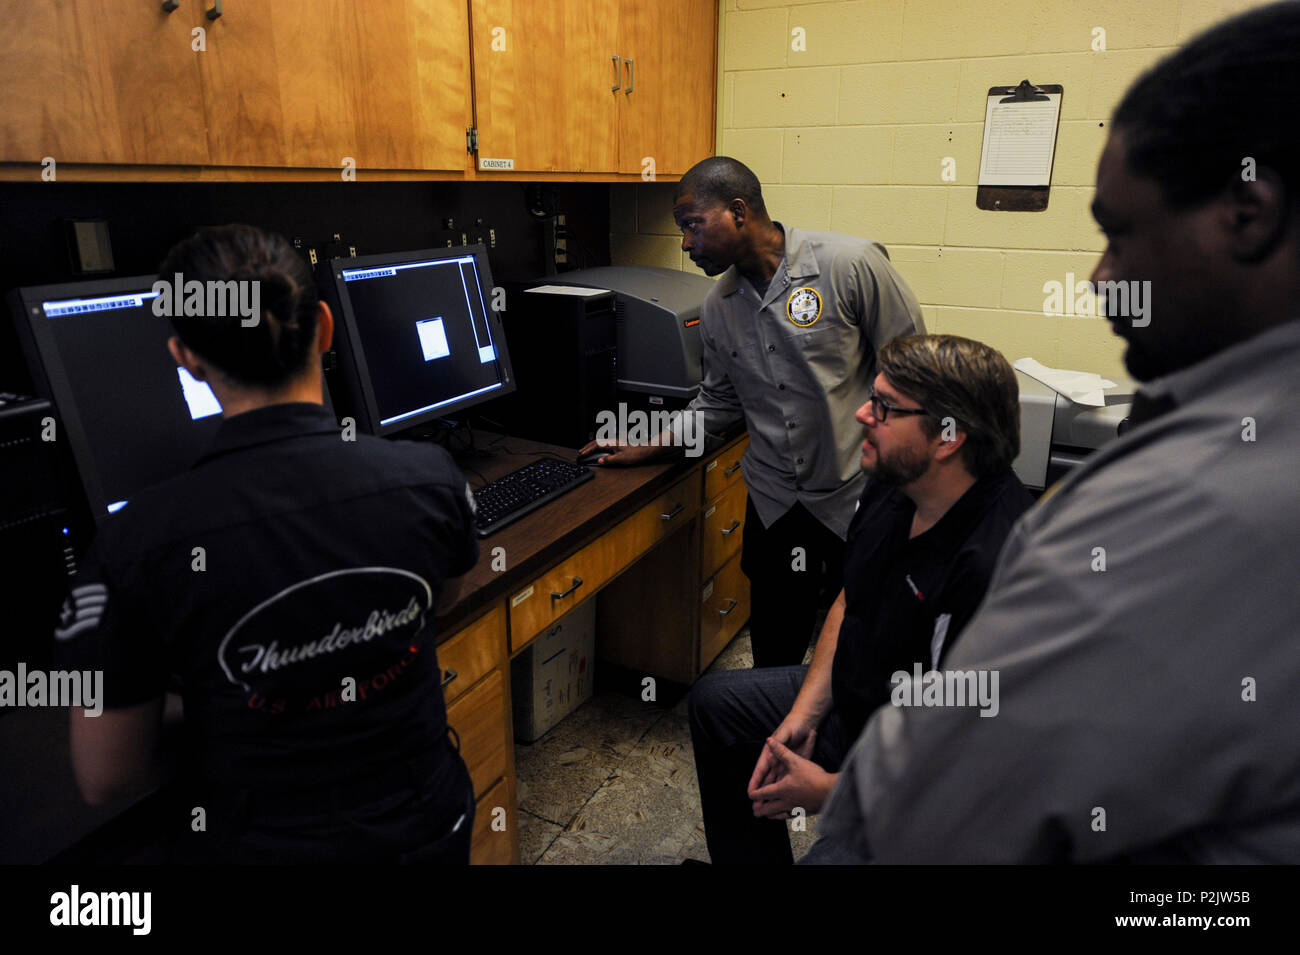 Battery Lab Stock Photos Images Alamy Integrated Circuitvintage Non Destructive Inspection Technicians Receive Training On A New X Ray Process In The